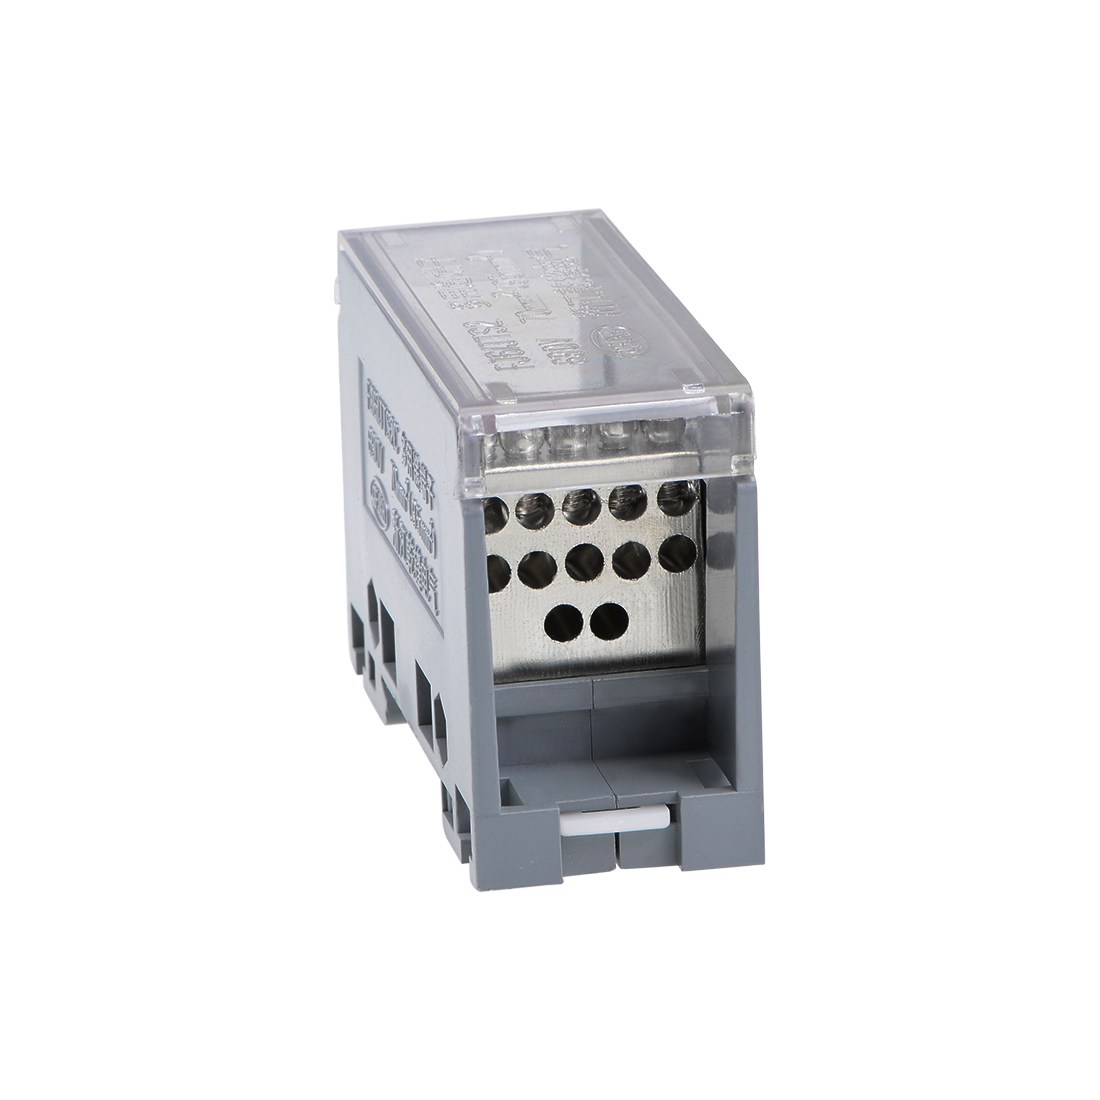 1 In 12 Out DIN Rail Terminal Blocks Connectors Distribution Block